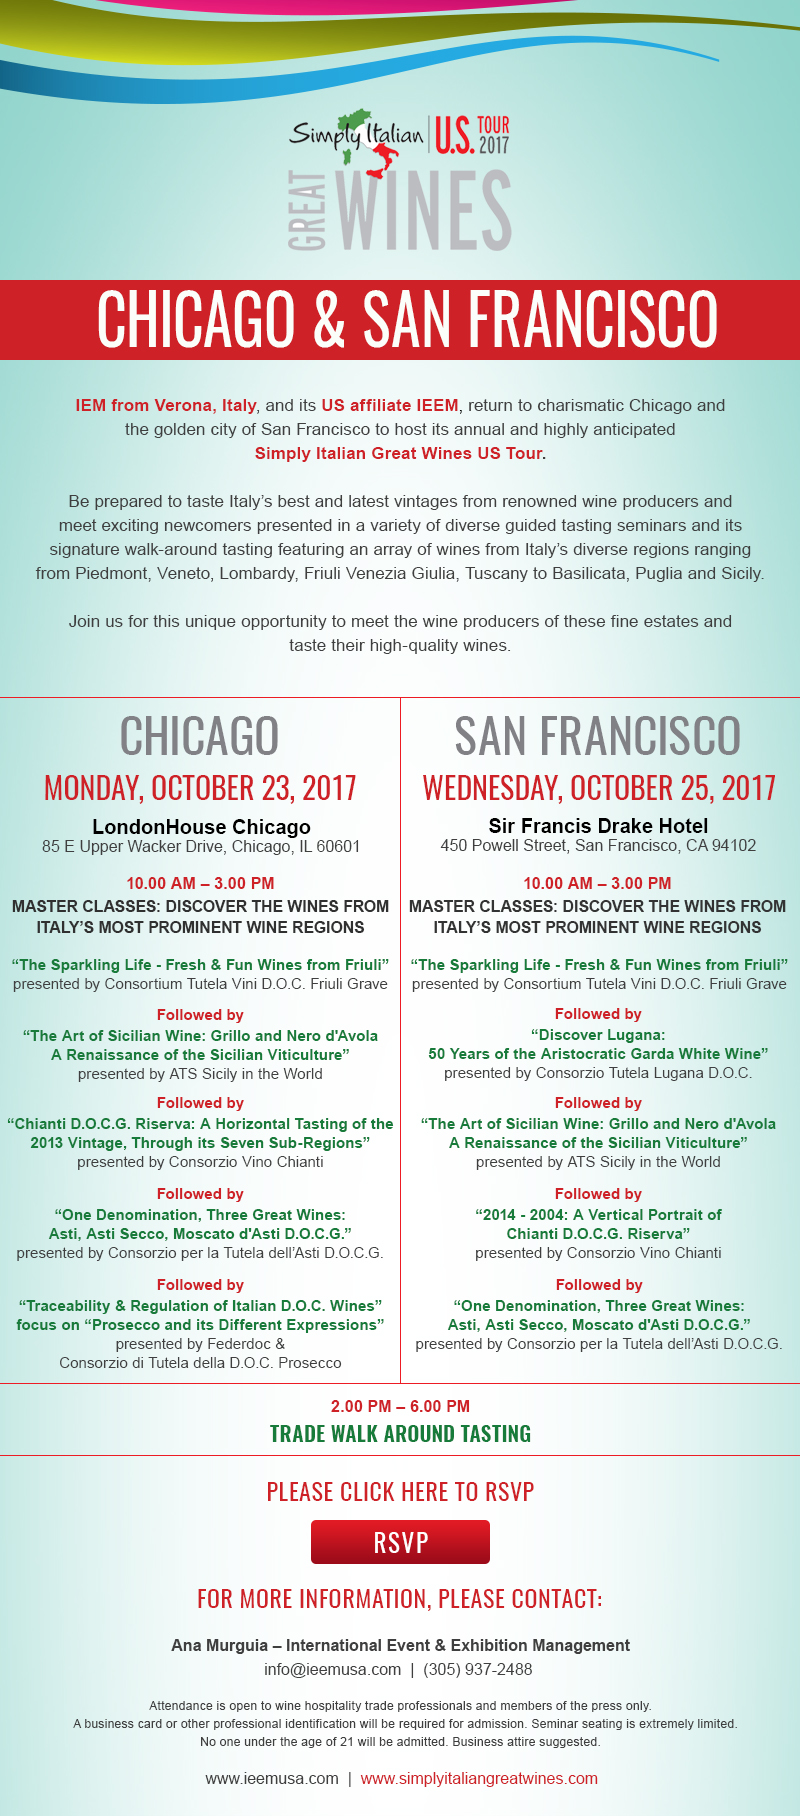 Invitation Simply Italian Great Wines US Tour 2017